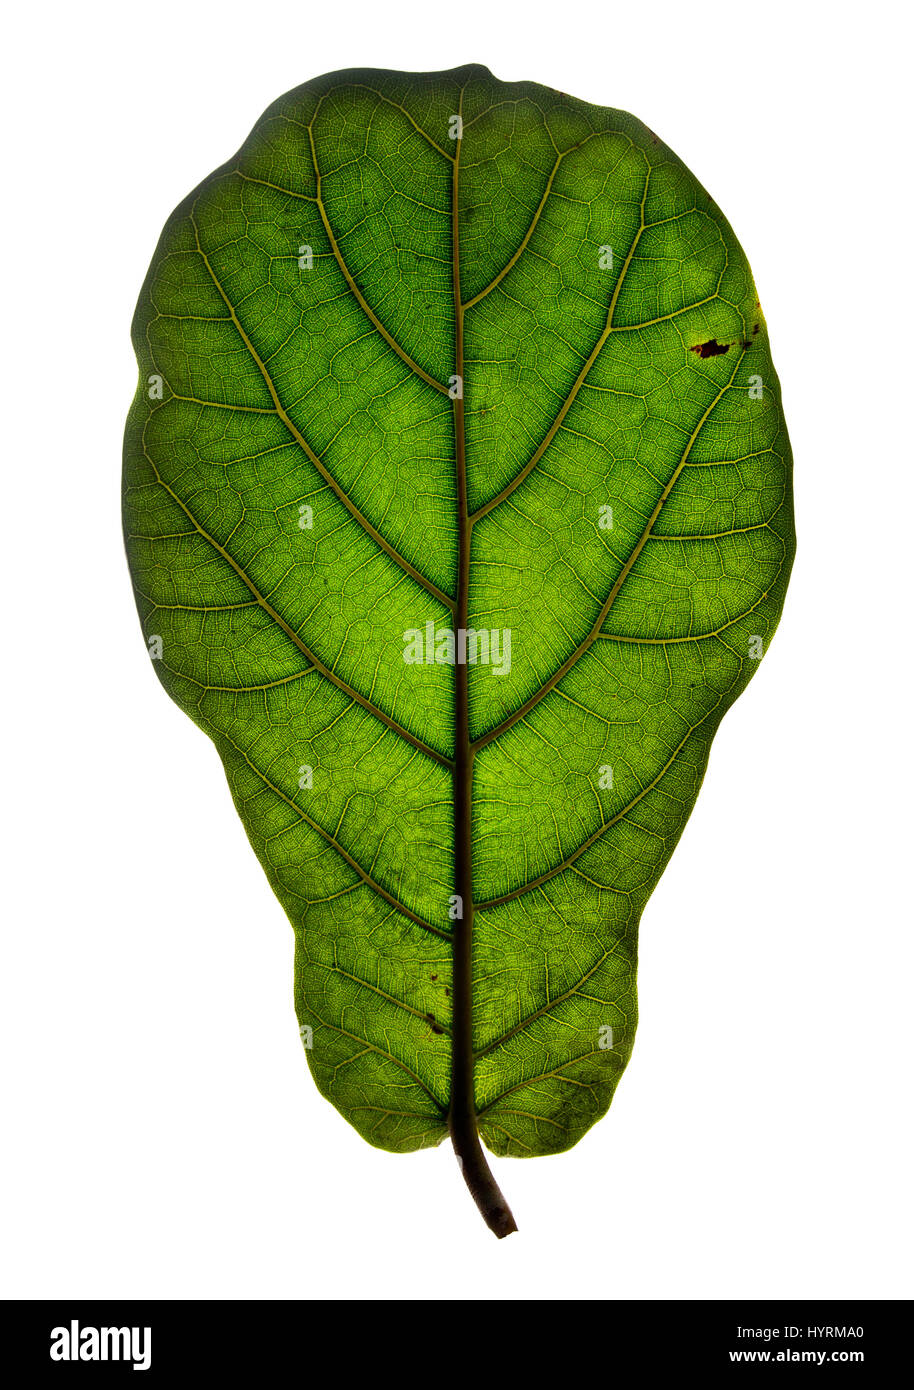 Green leaf lit from behind. Stock Photo